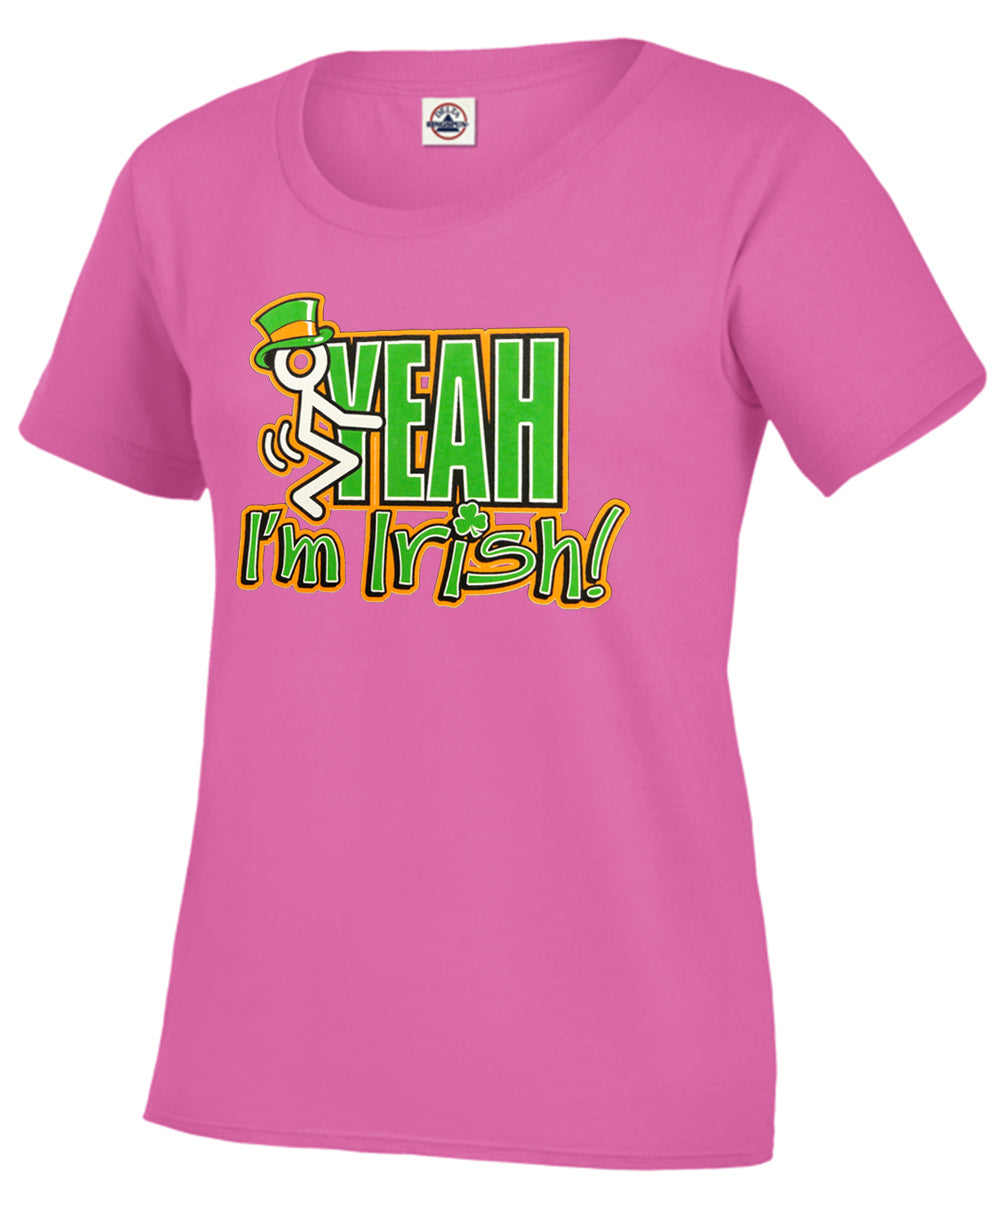 F*ck Yeah I'm Irish Girl's T-Shirt